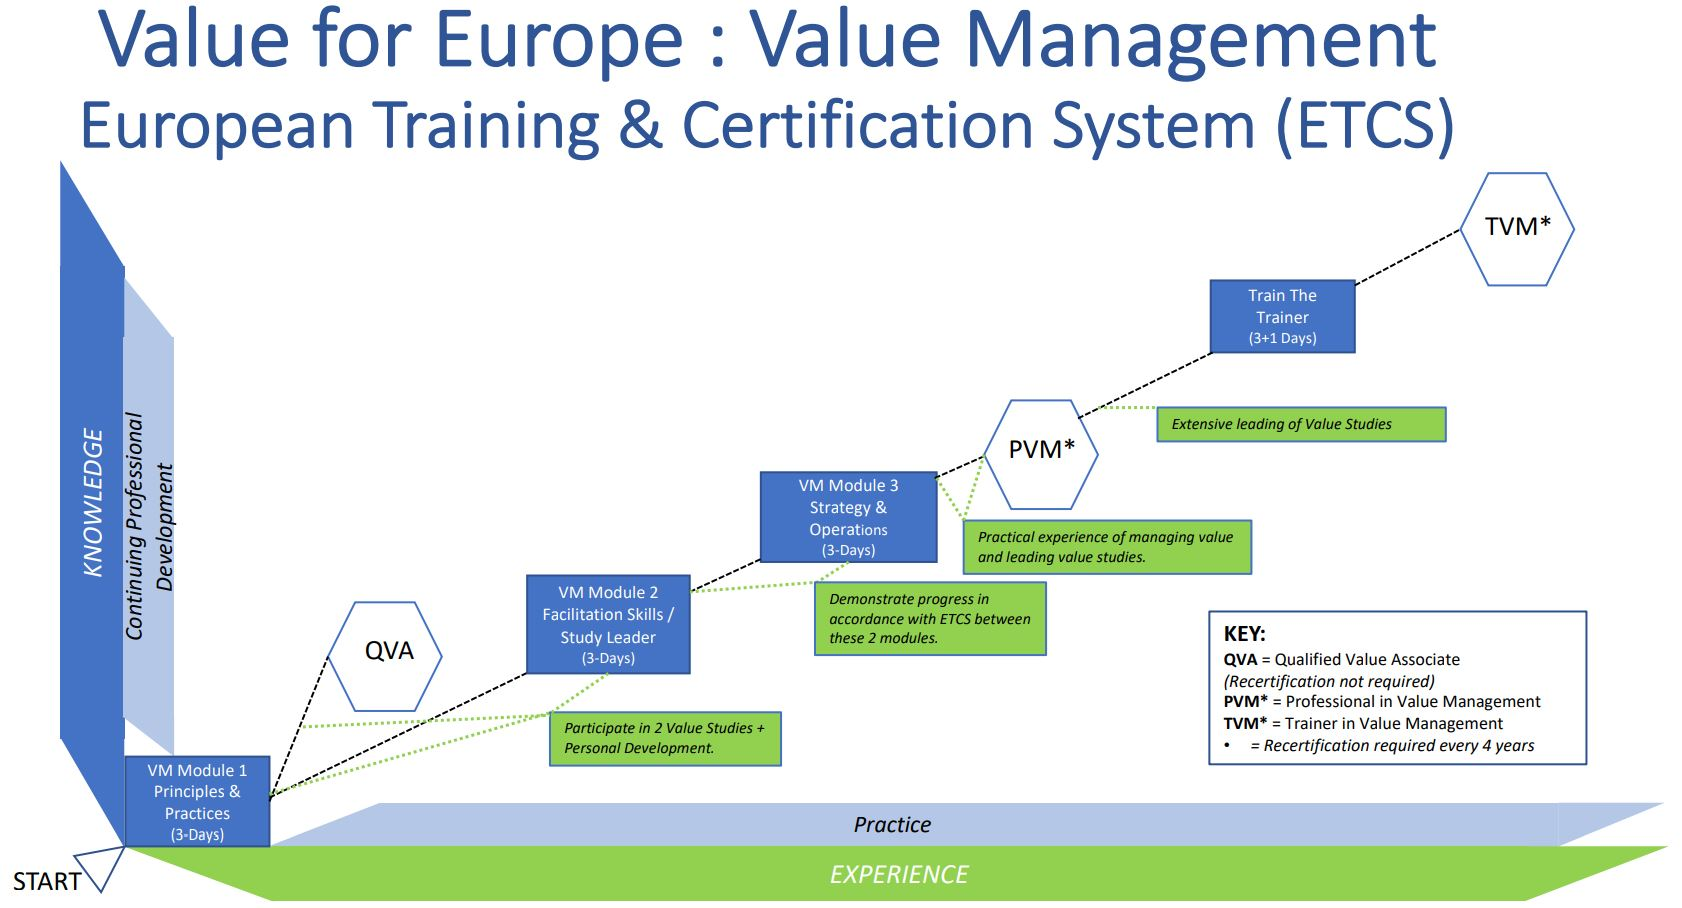 European Training & Certification System